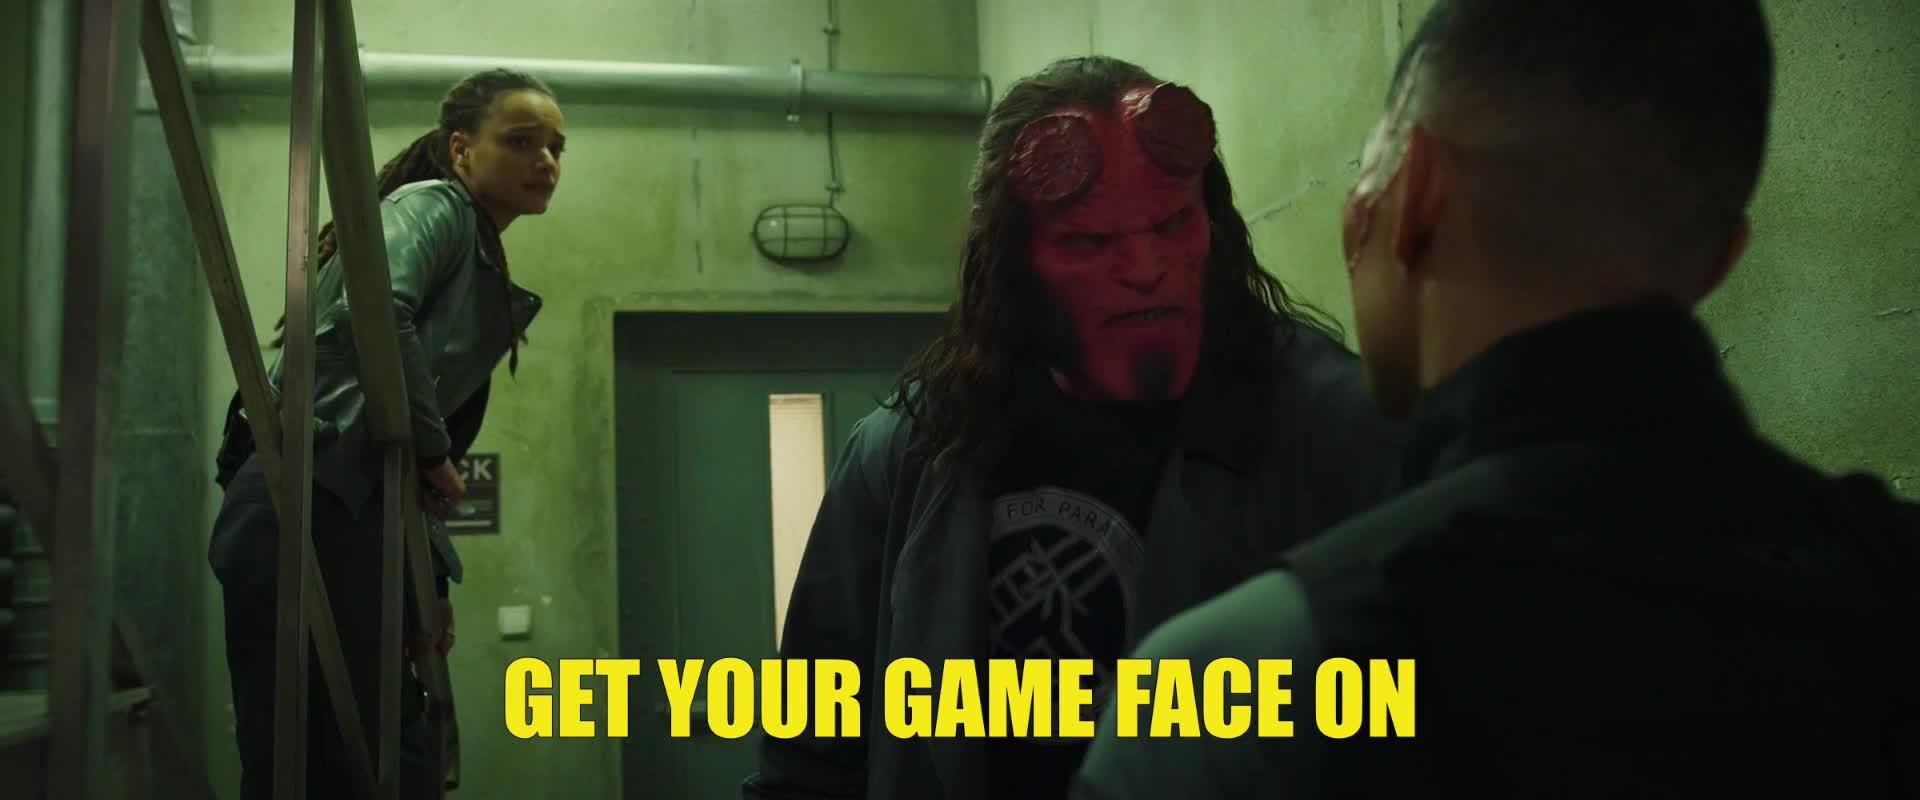 daniel dae kim, dark horse, dark horse comics, david harbour, fight, hellboy, hellboy 2019, hellboy movie, lets go, punch, ready, superhero, superheroes, Hellboy Game Face Punch GIFs